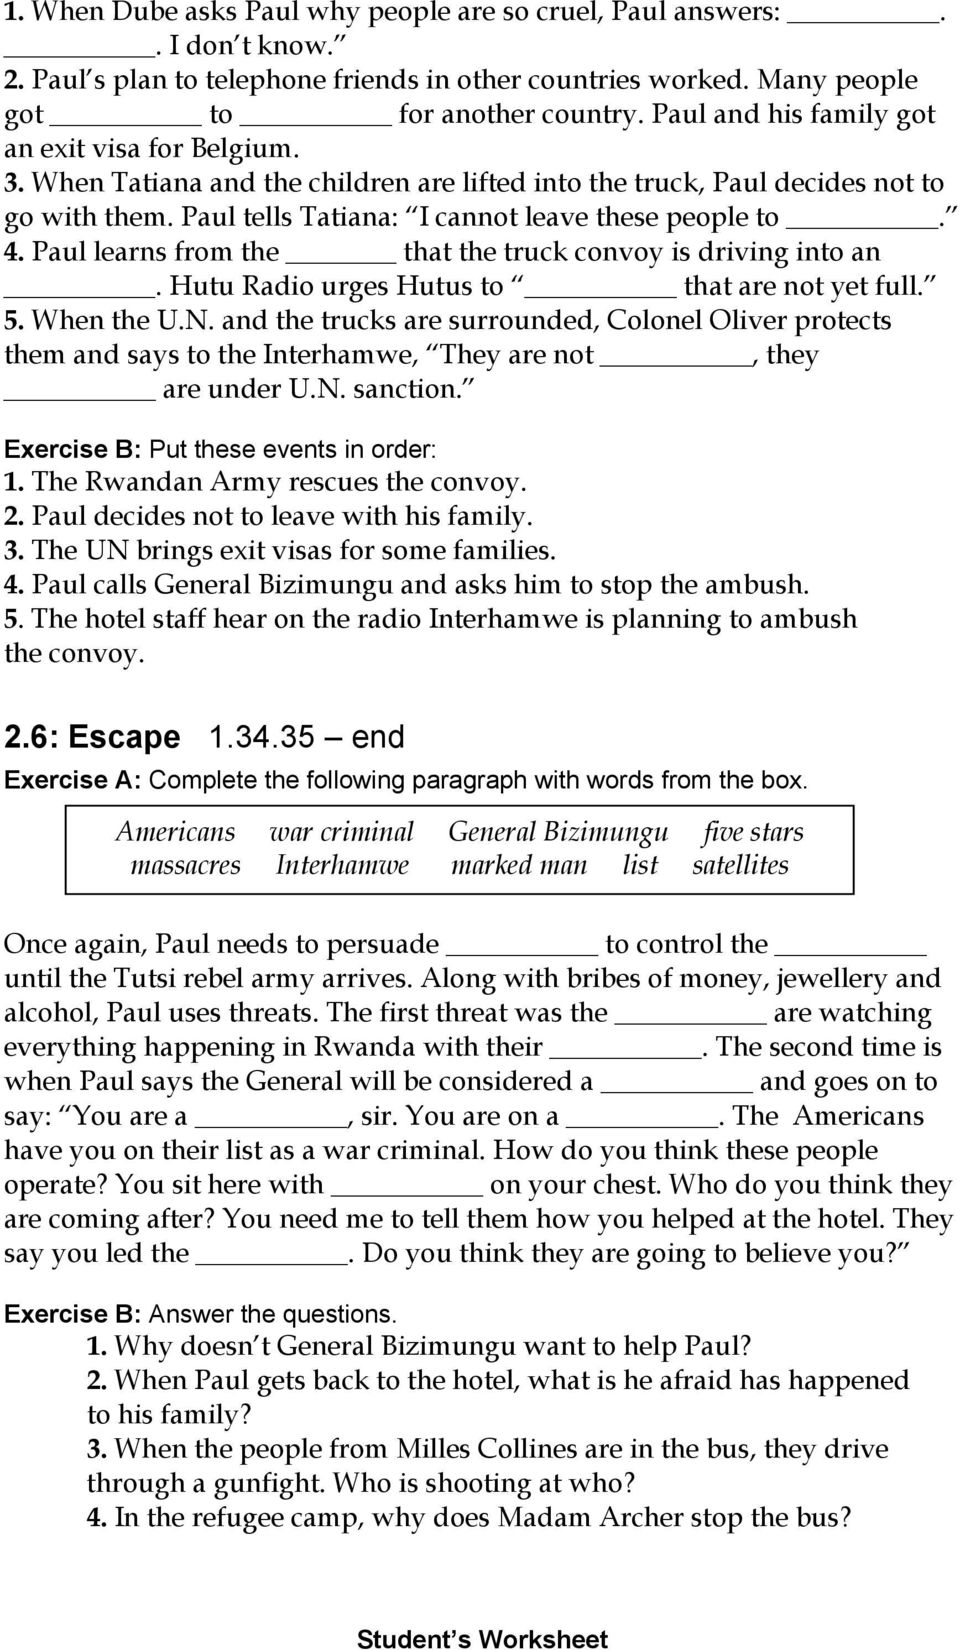 Worksheets Hotel Rwanda Worksheet comprehension and discussion activities for the movie hotel rwanda pdf paul learns from that truck convoy is driving into an hutu radio urges